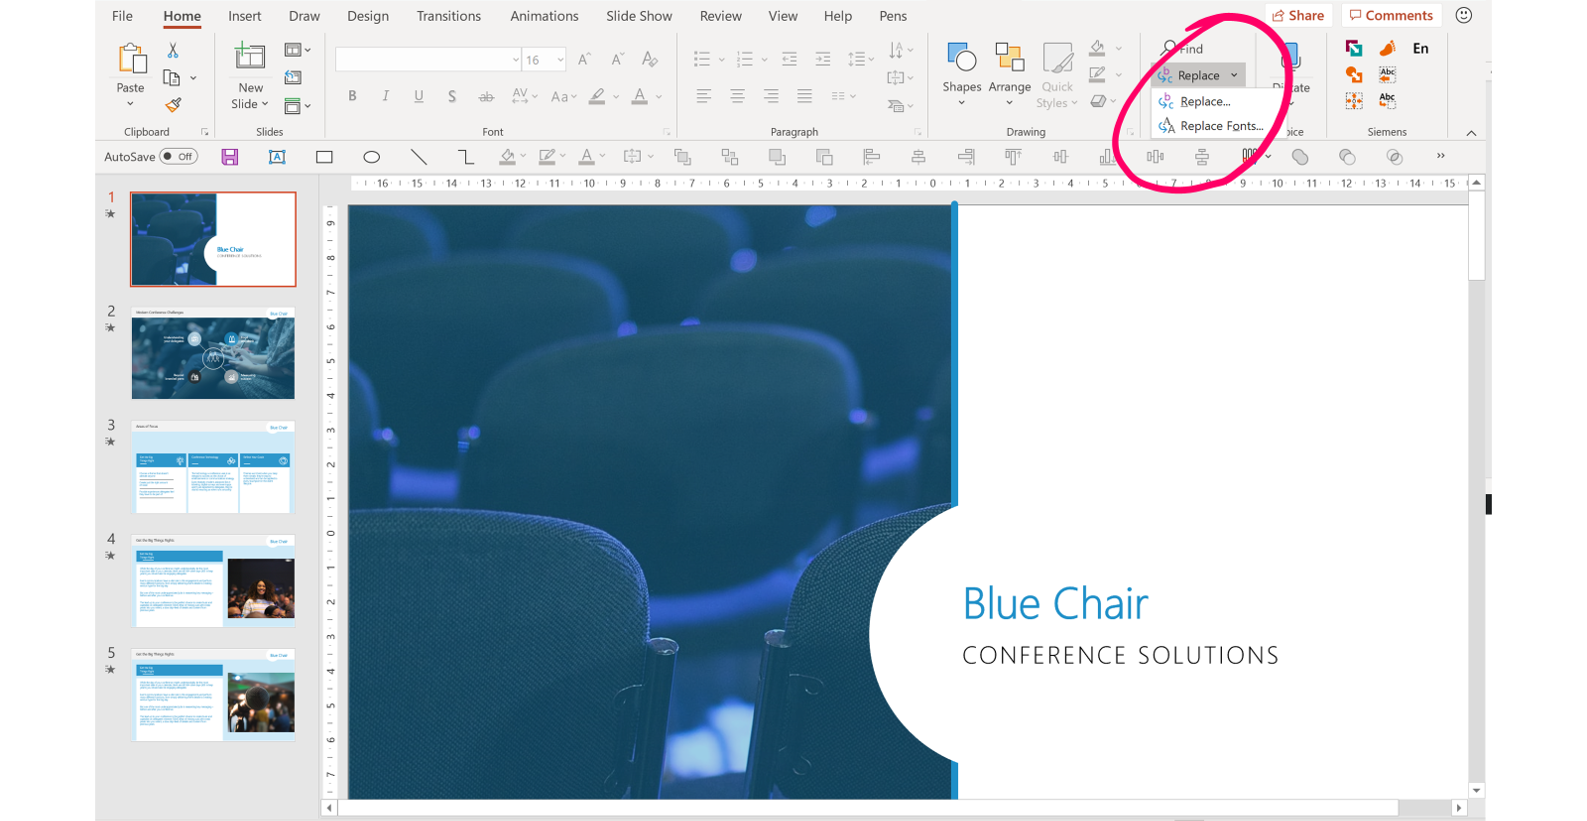 Replace fonts workaround: Locating pesky PowerPoint fonts